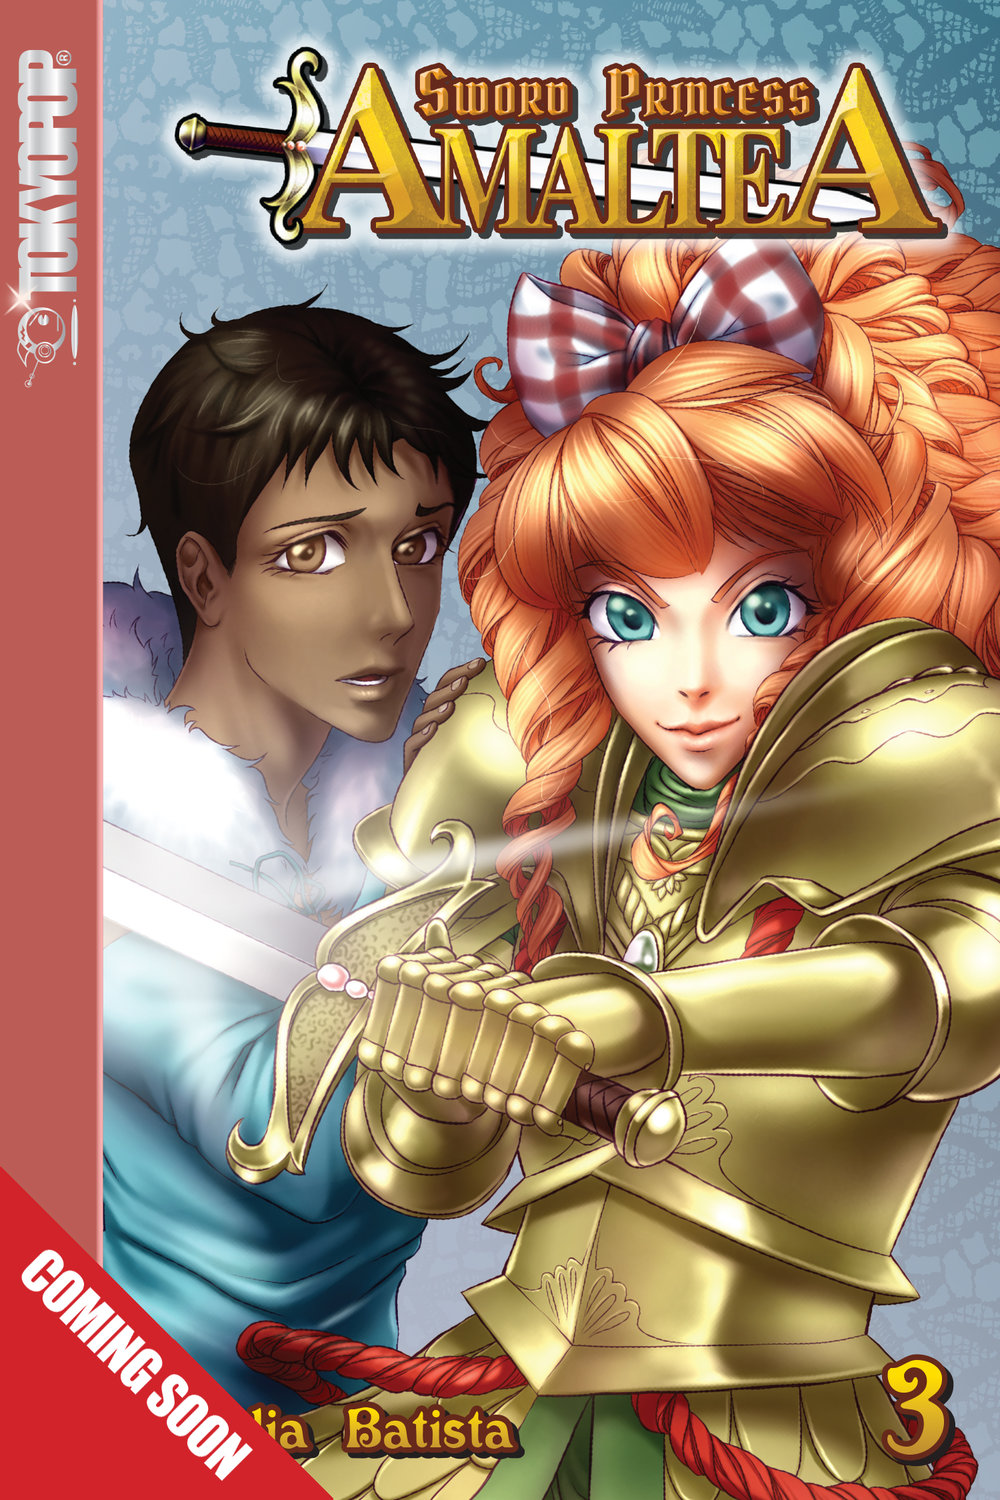 Sword Princess Amaltea, Vol. 3